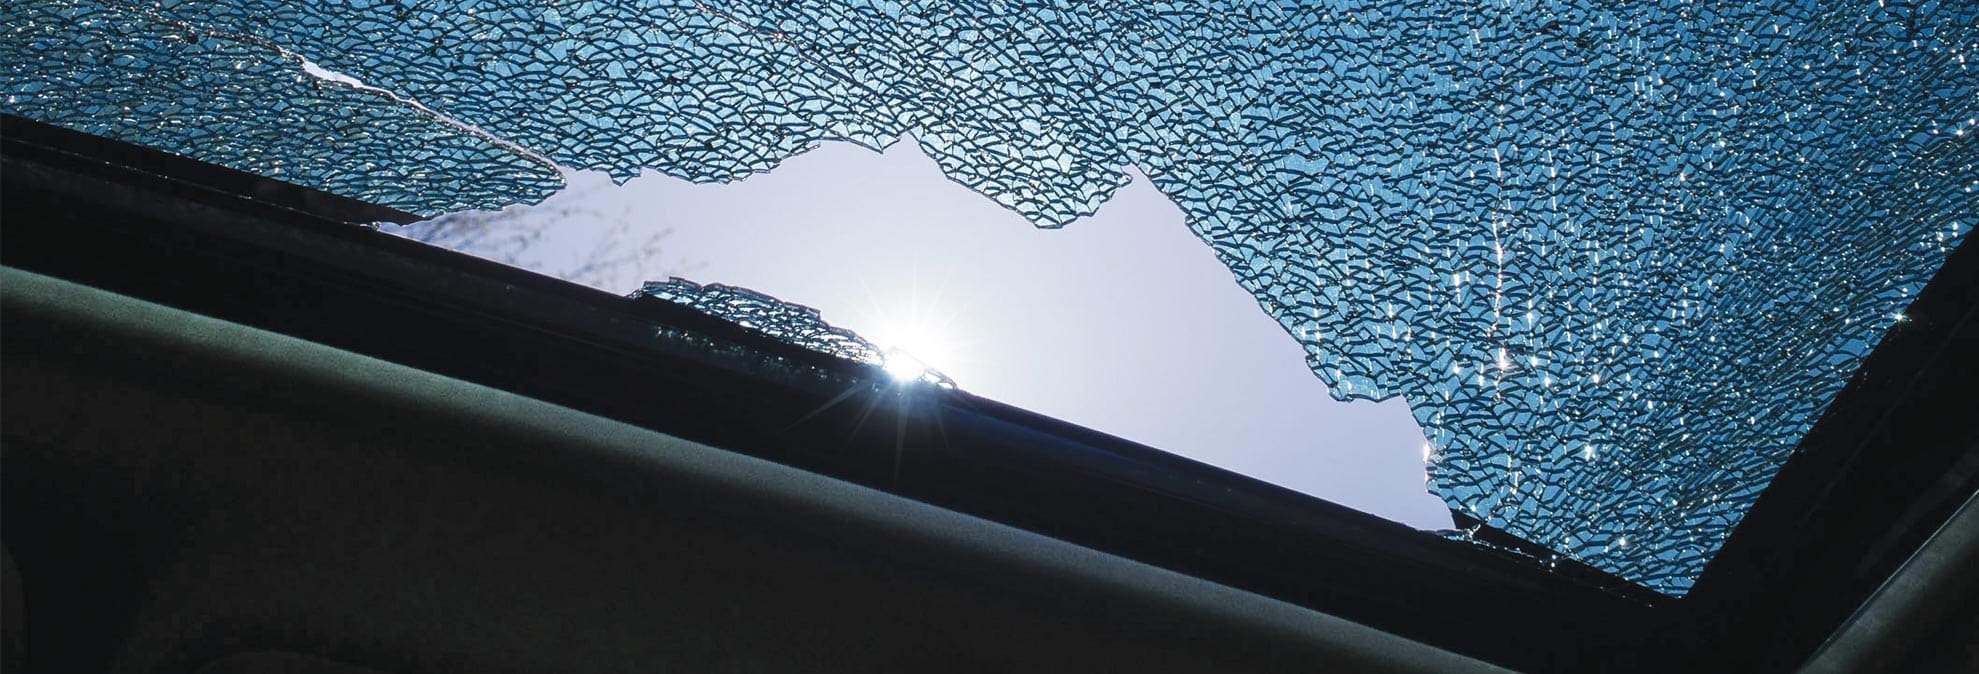 Best Used Trucks >> Exploding Sunroofs: Danger Overhead - Consumer Reports